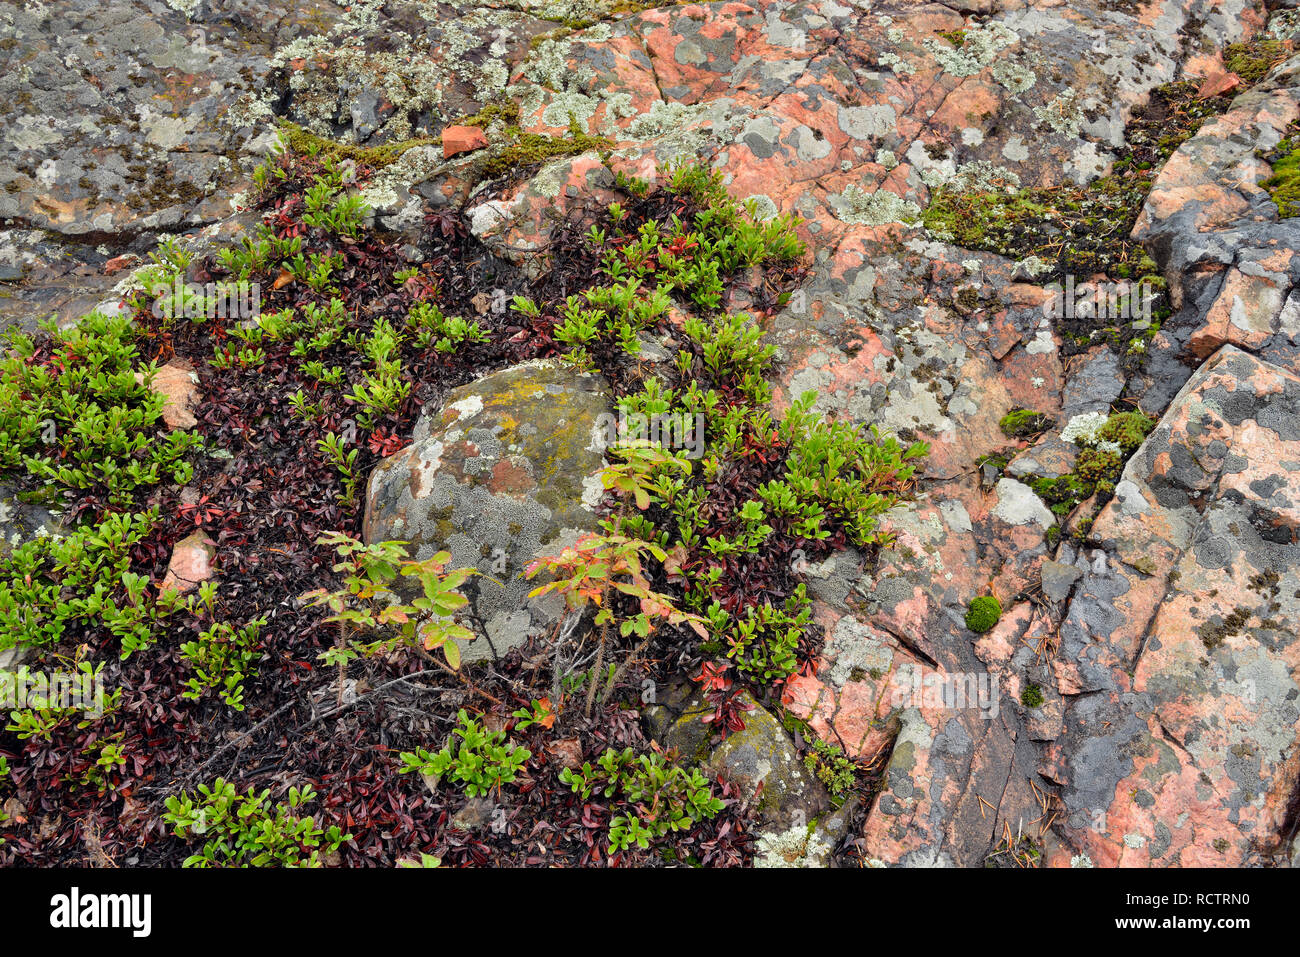 Precambrian shield granite with lichens and ground cover, Yellowknife, Northwest Territories, Canada - Stock Image